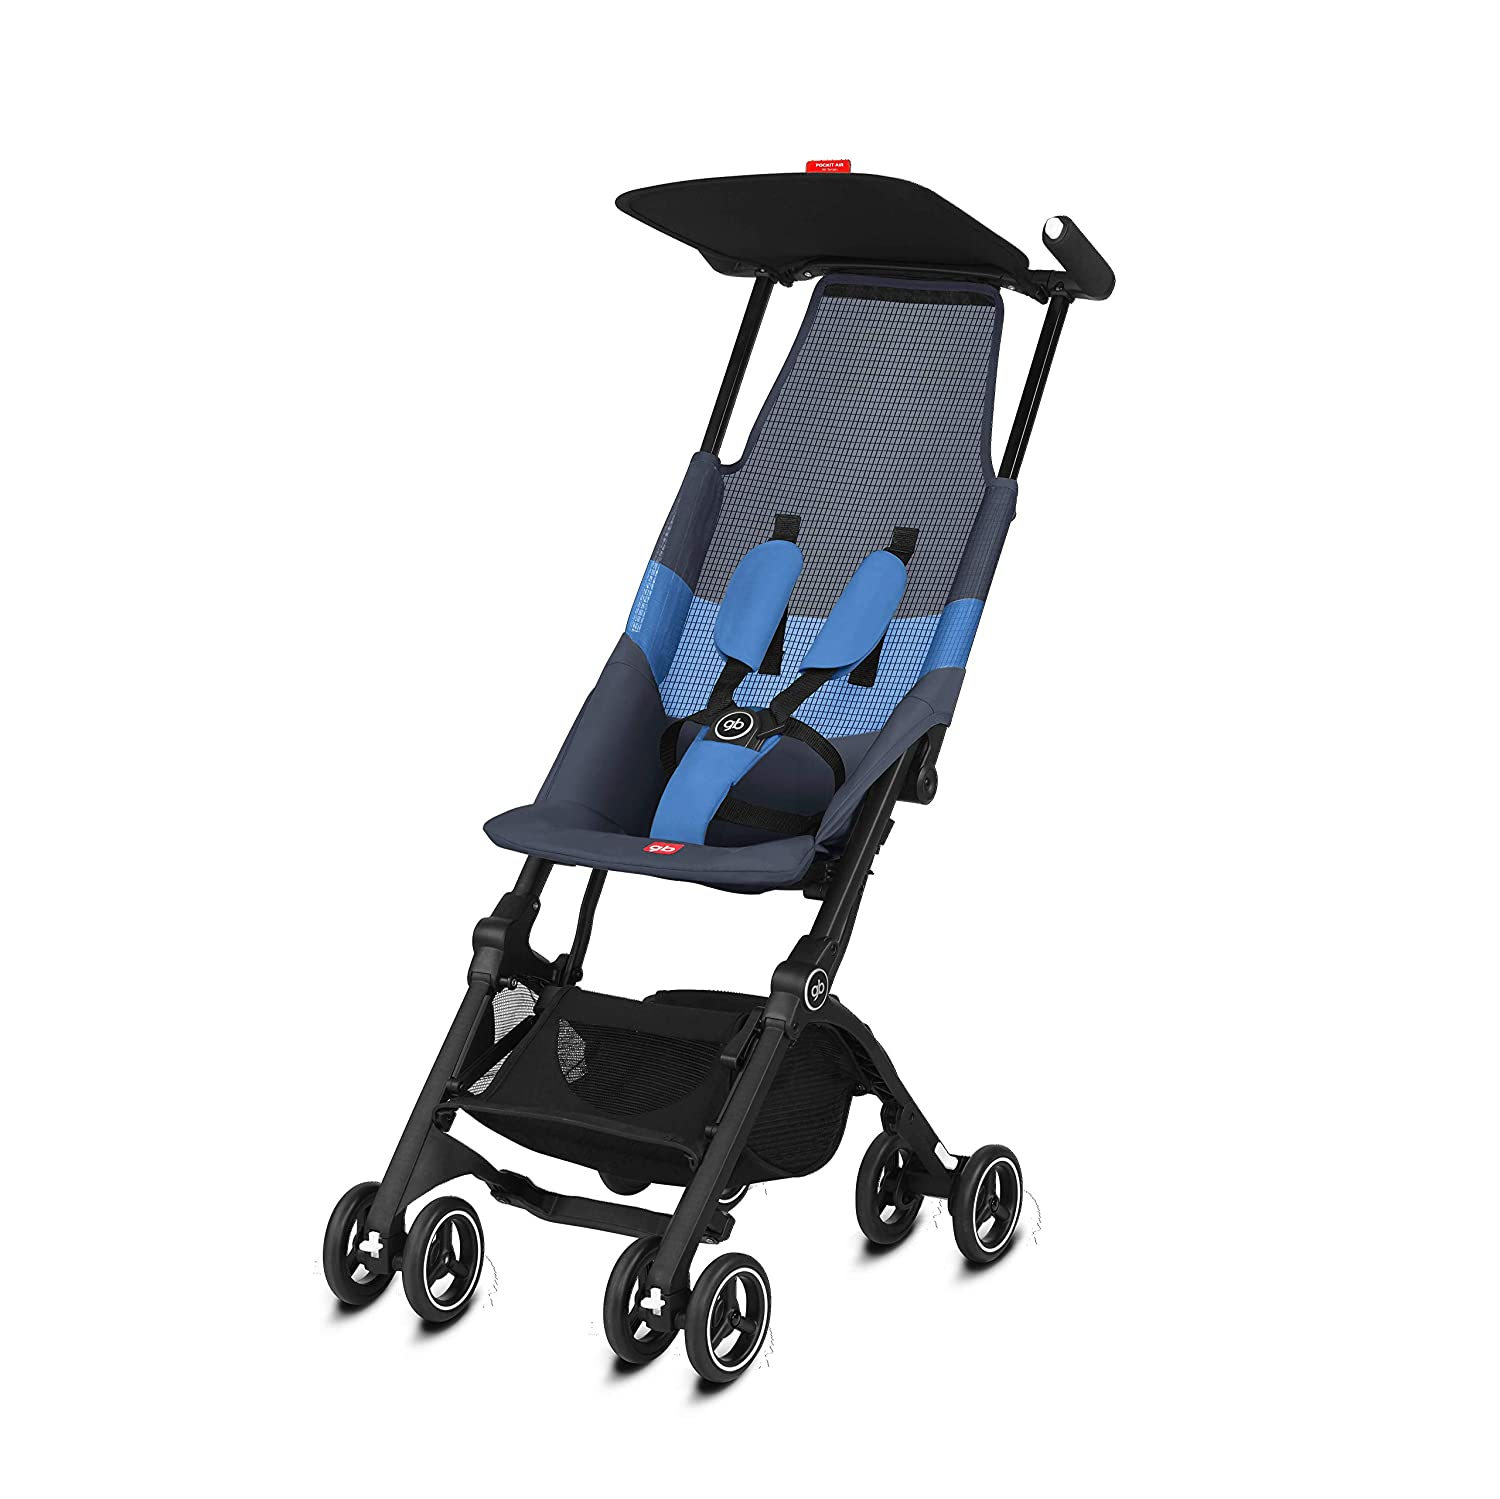 Top 9 Best Lightweight Strollers For Travel (2020 Reviews) 9